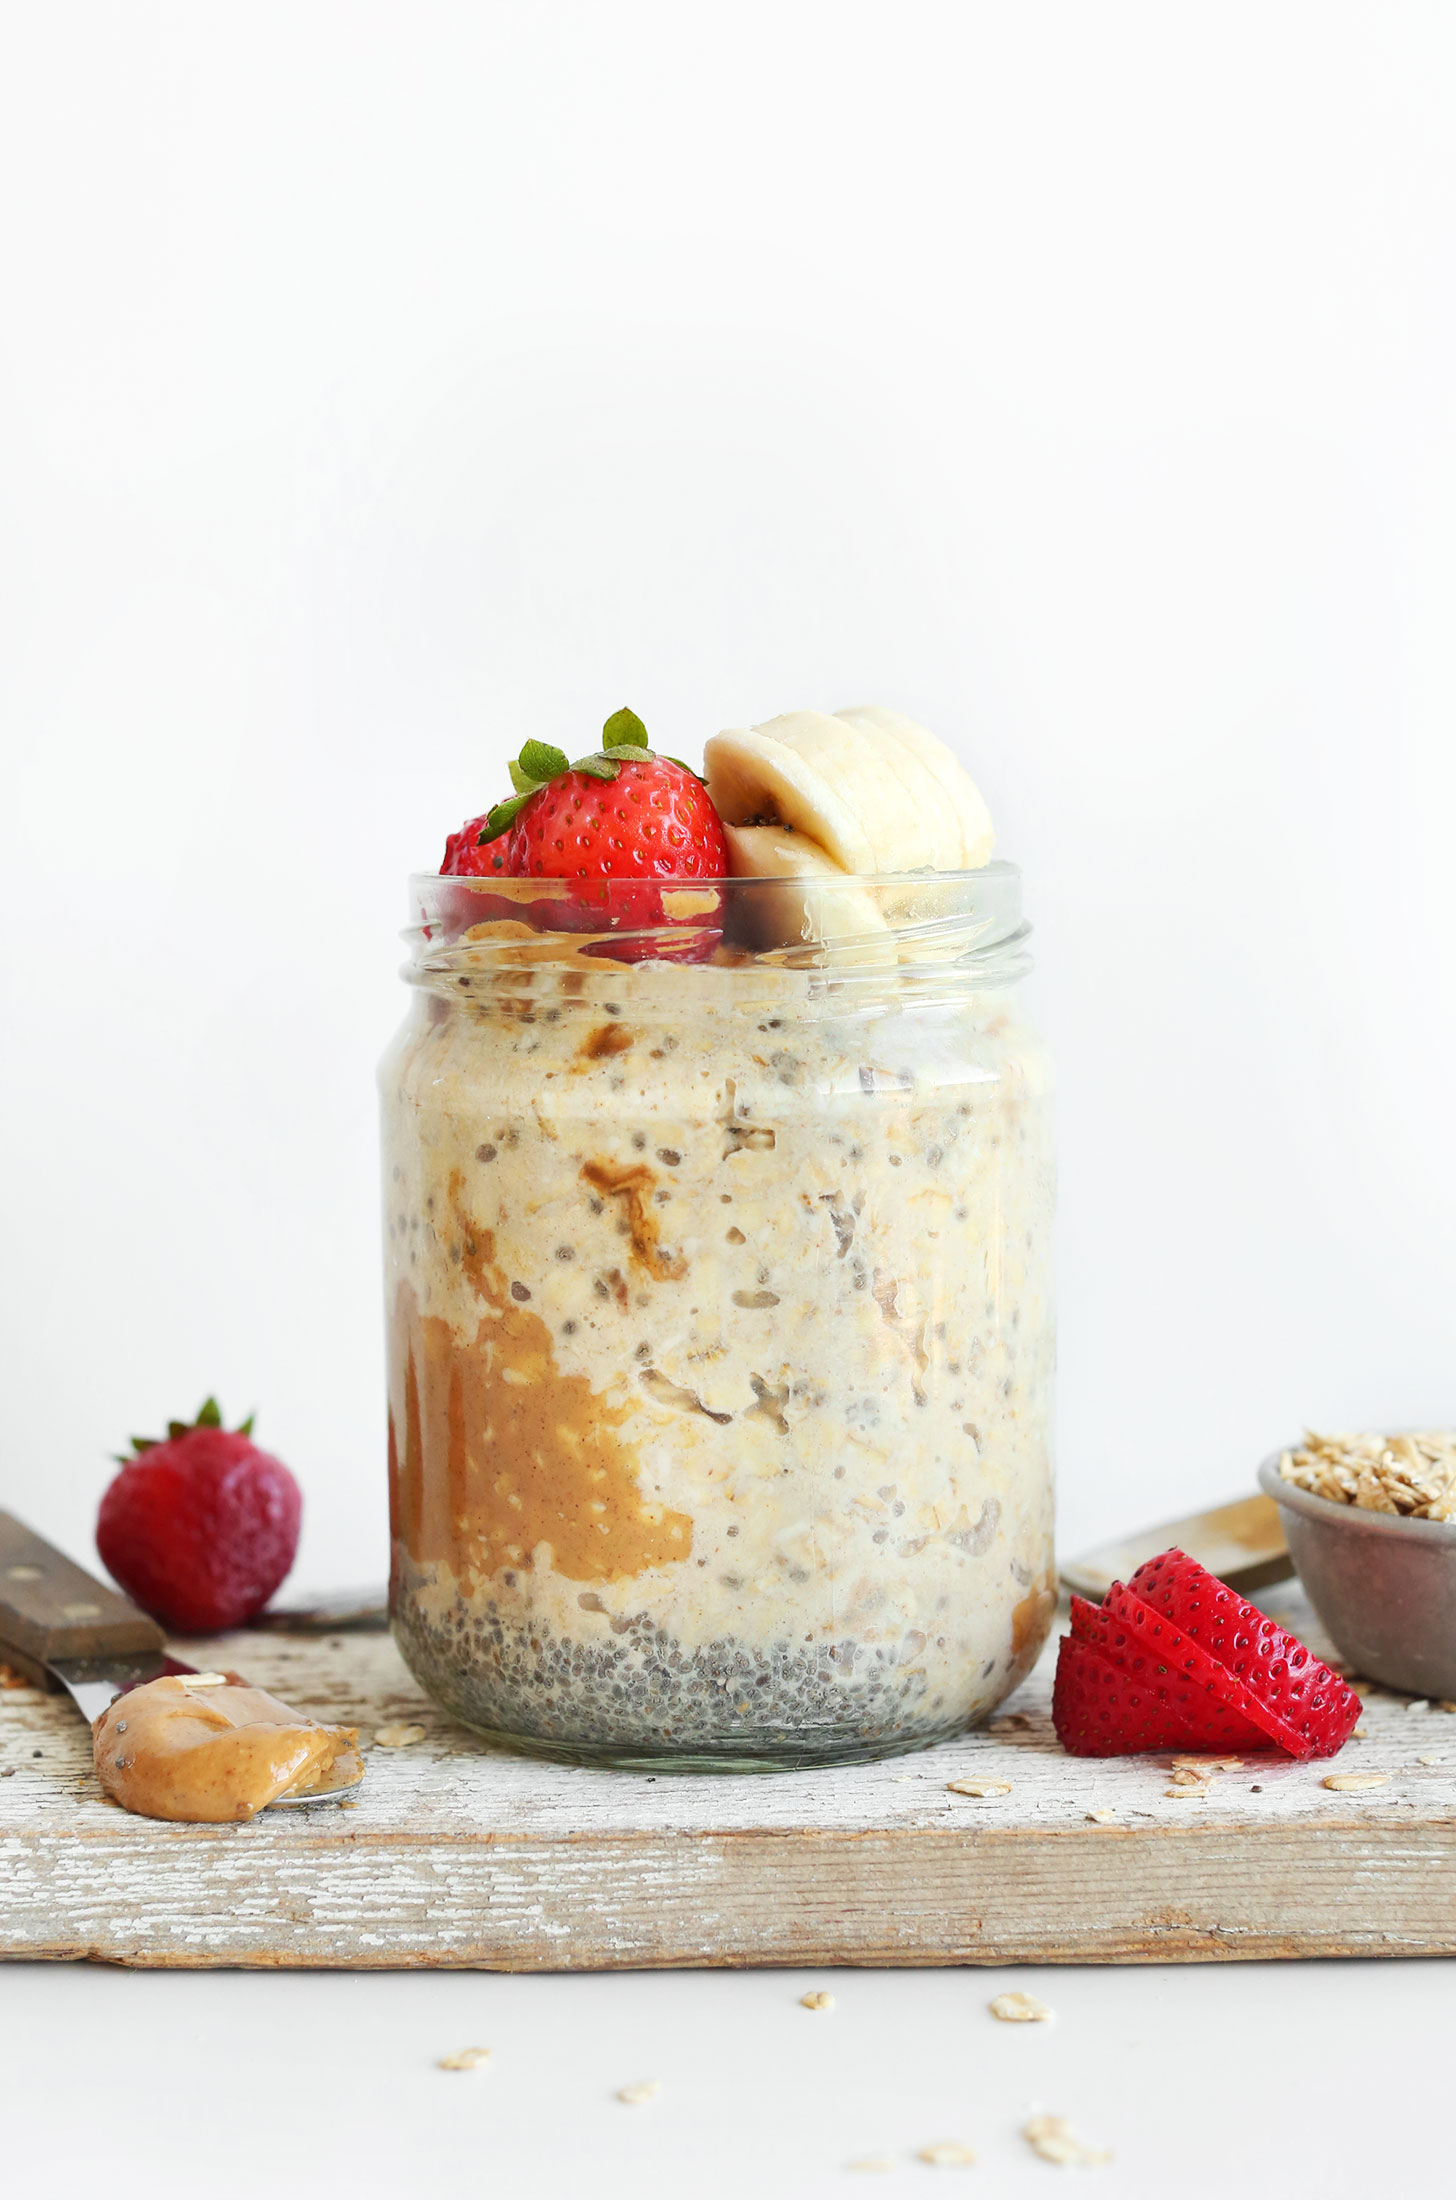 THE BEST AMAZING Peanut Butter Overnight Oats! Just 5 ingredients, 5 minutes prep, and SO delicious! #vegan #recipe #glutenfree #meal #breakfast #oats #oatmeal #minimalistbaker